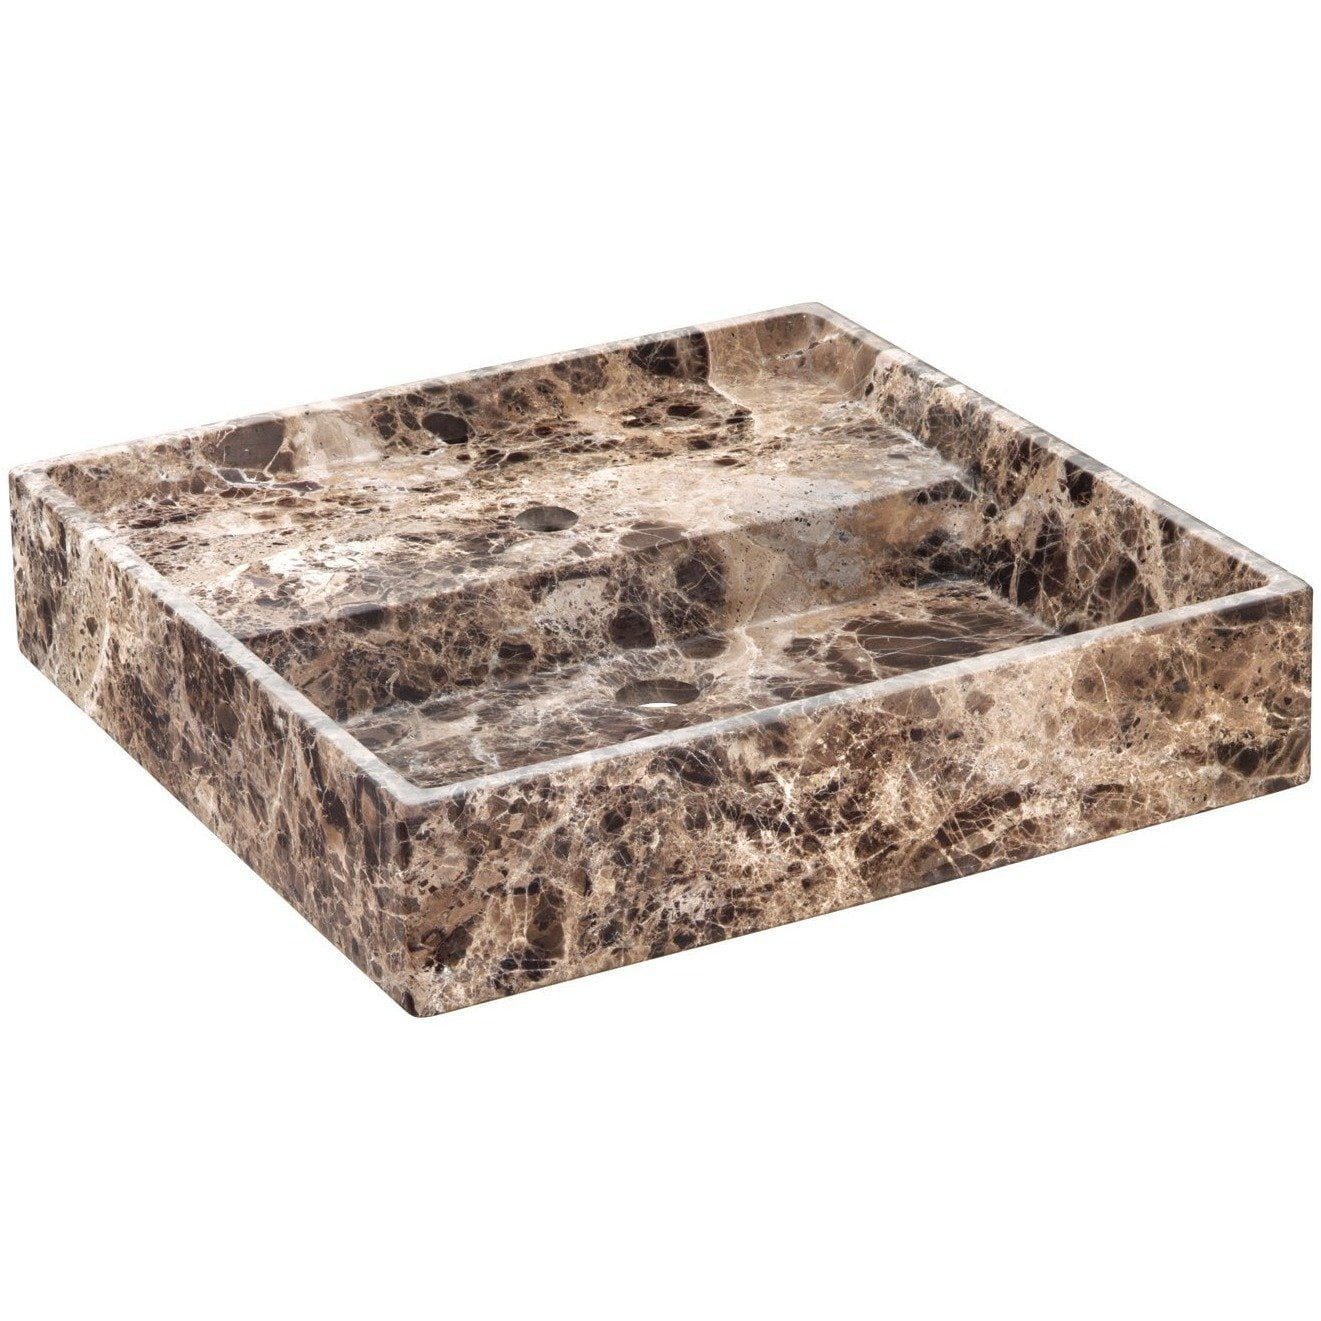 Exclusive Square Vessel Sink Countertop Lavatory Washbasin Matte Breccia Marble Cosmic Bathroom Sinks 6000 00 7000 00 20 To 24 Inches Above Counter Brown Cosmic Marble